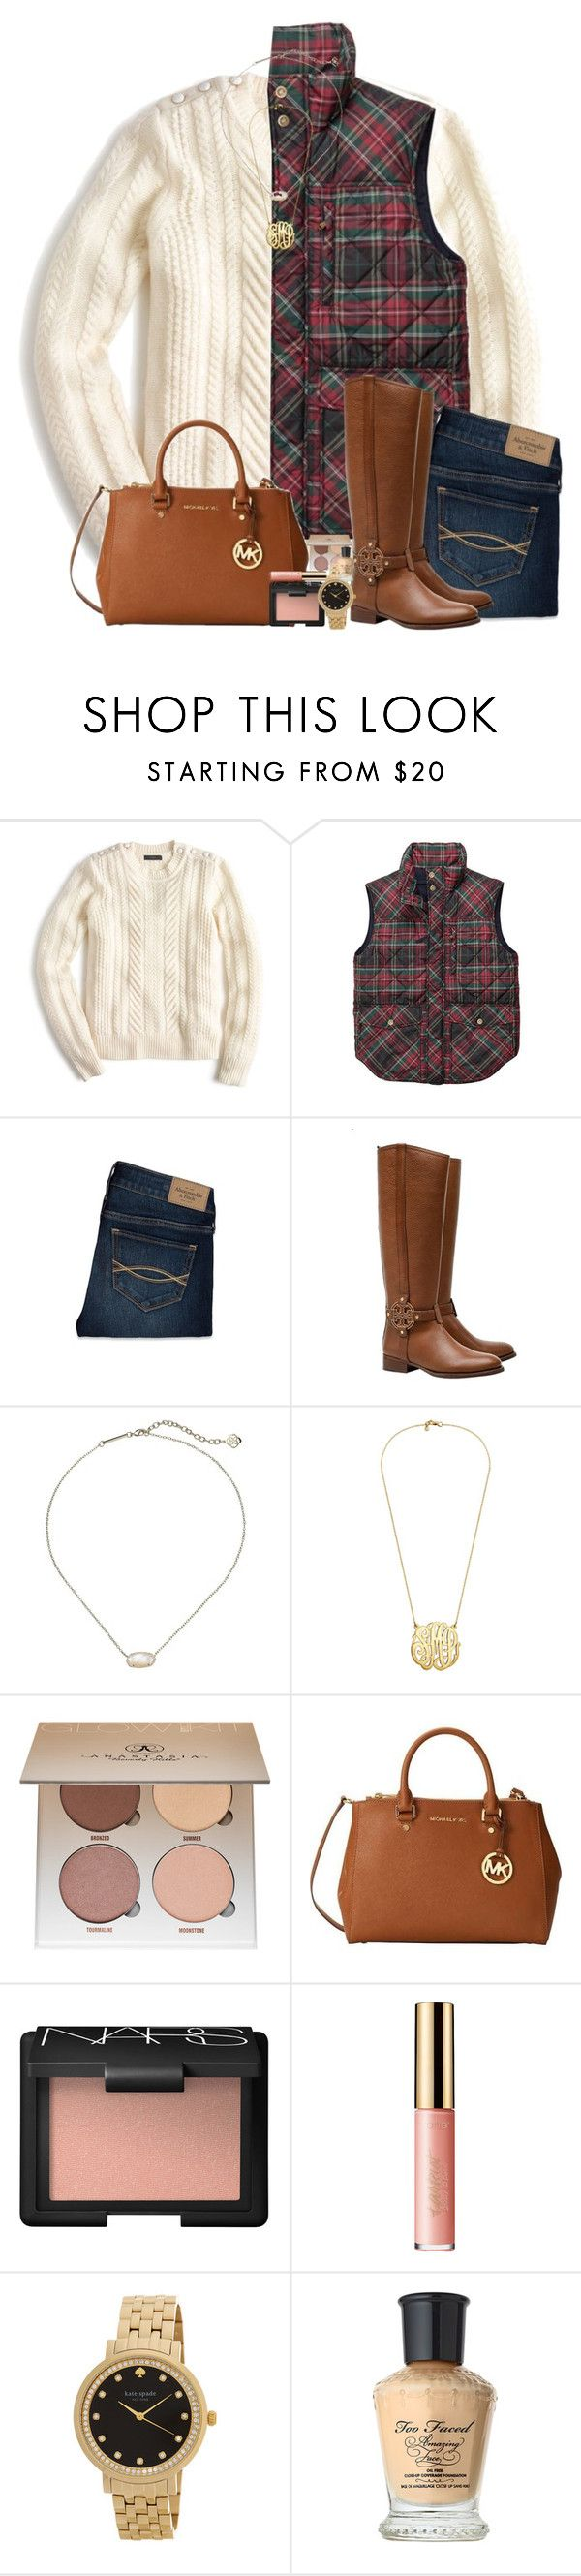 """FALLing in love ❤"" by pineappleprincess1012 ❤ liked on Polyvore featuring J.Crew, Southern Proper, Abercrombie & Fitch, Tory Burch, Kendra Scott, Anastasia Beverly Hills, Michael Kors, NARS Cosmetics, tarte and Kate Spade"